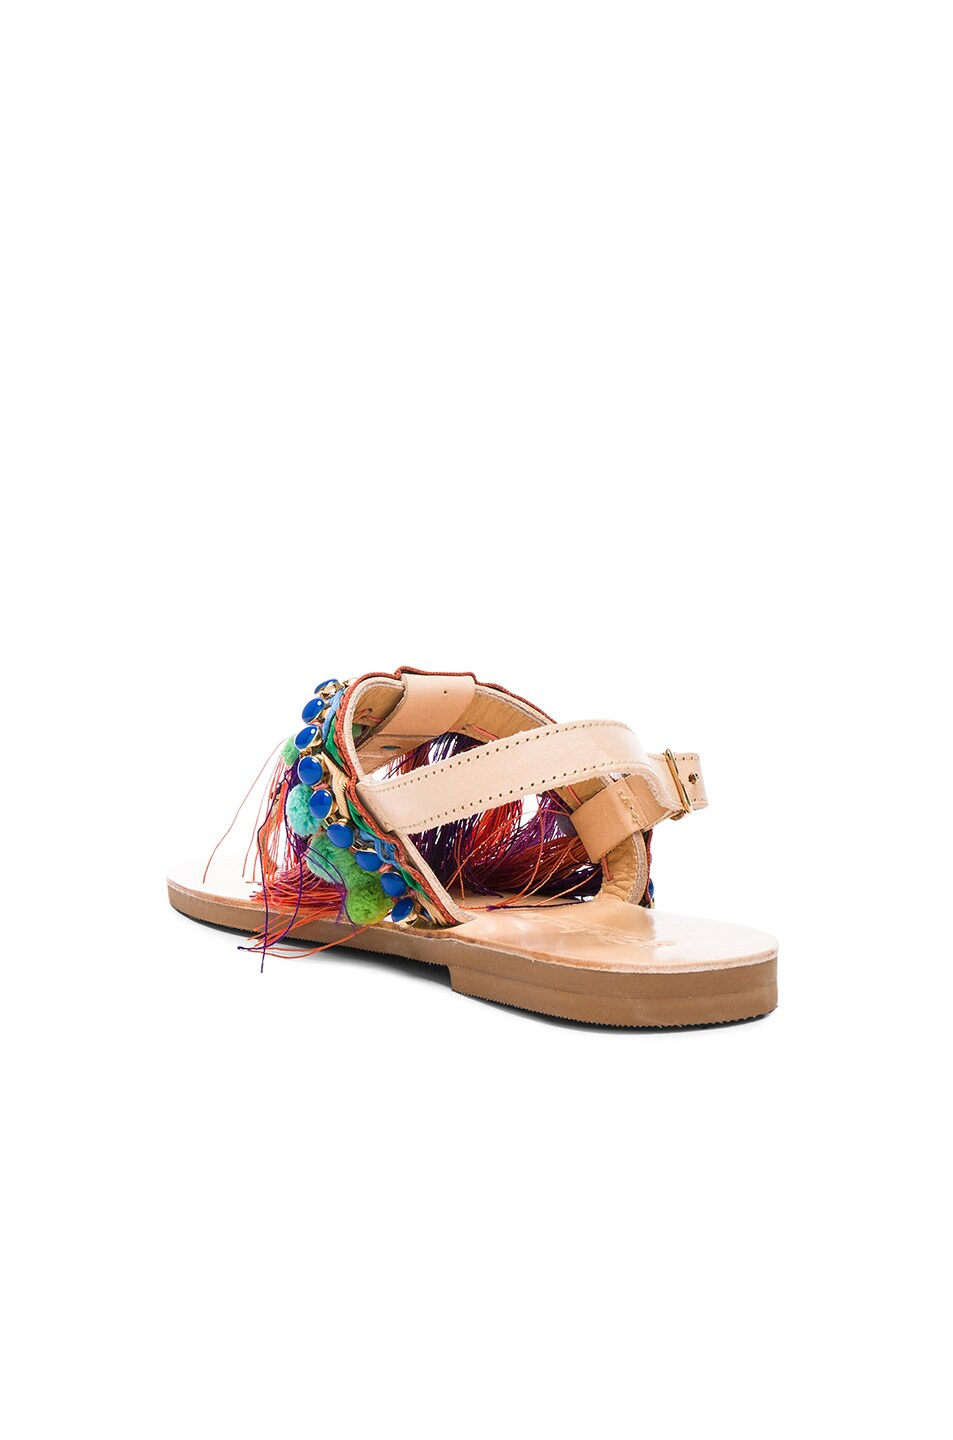 Image 4 of Elina Linardaki Leather Dizzy Parrot Sandals in Multi